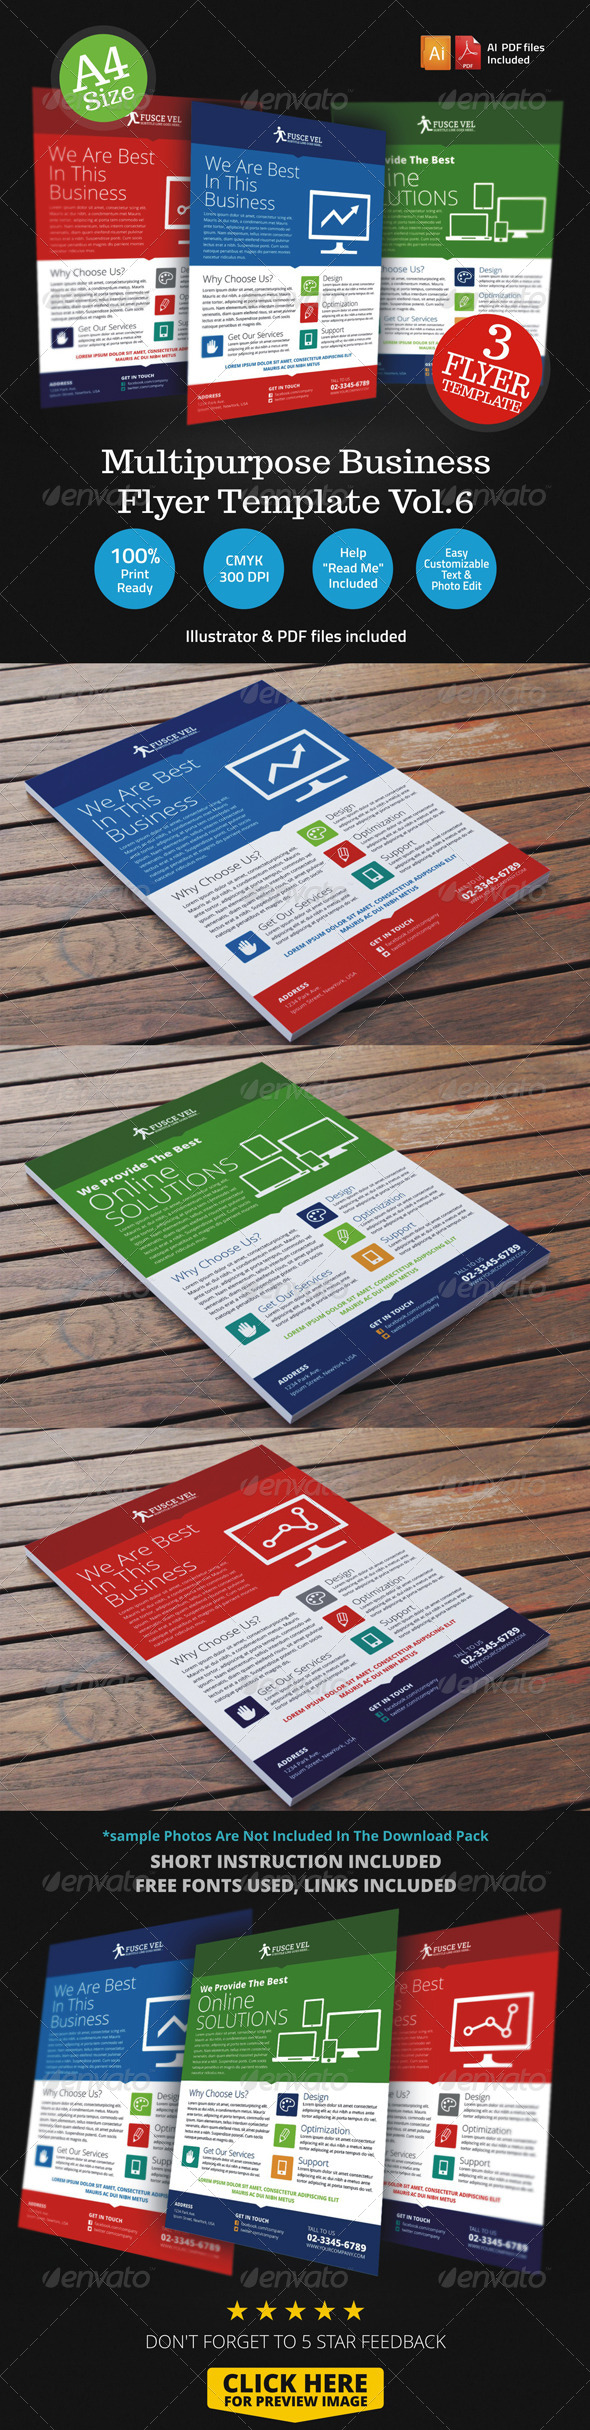 GraphicRiver Multipurpose Business Flyer Template Vol.6 6812131